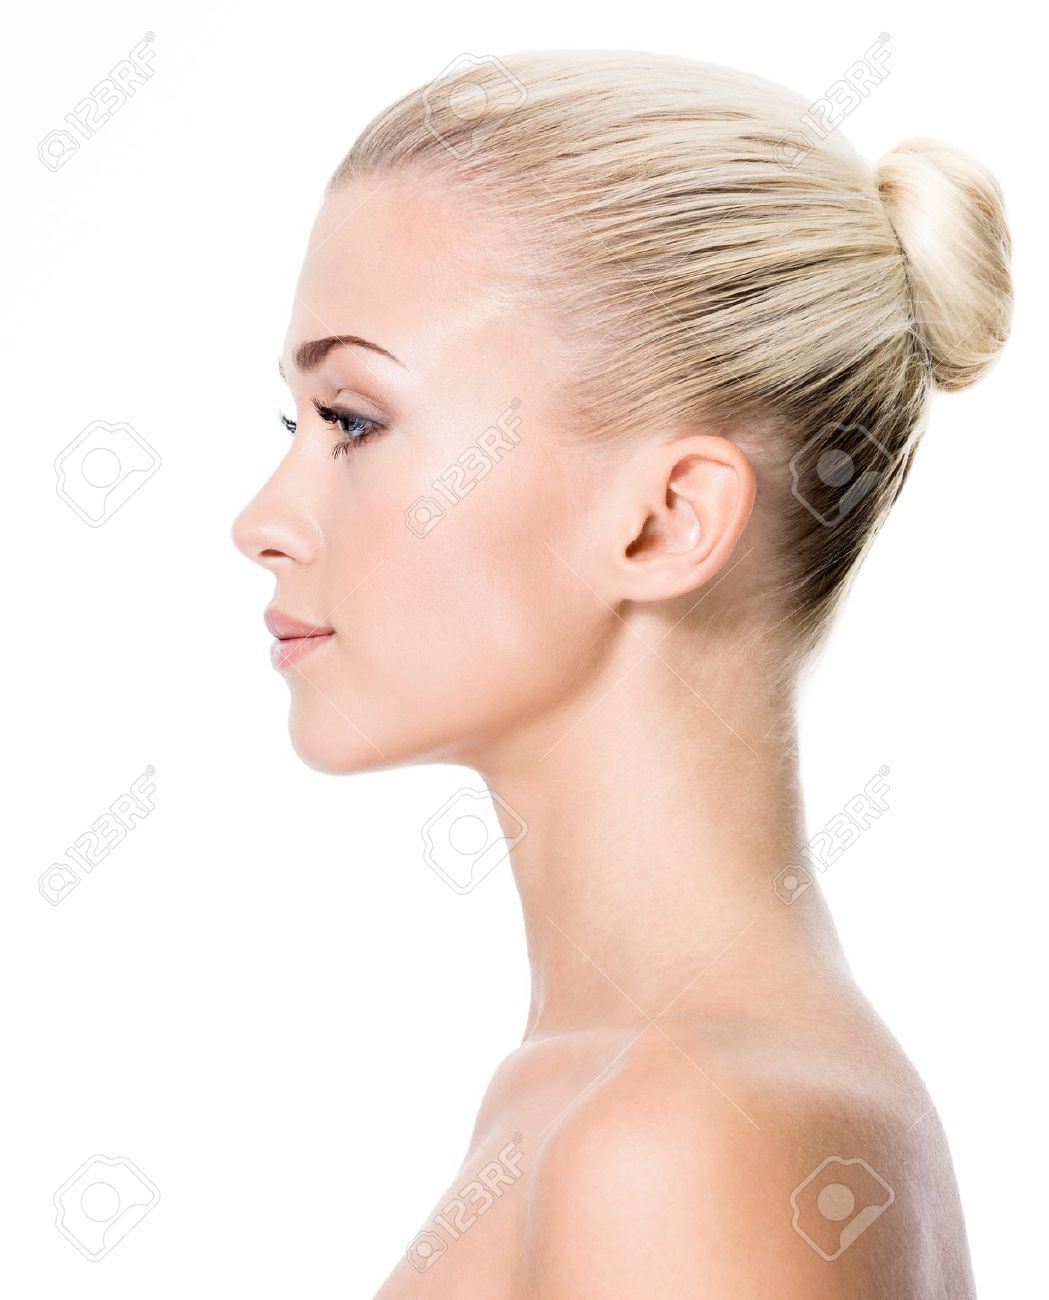 17642694 Profile Portrait Of Young Blond Woman Isolated